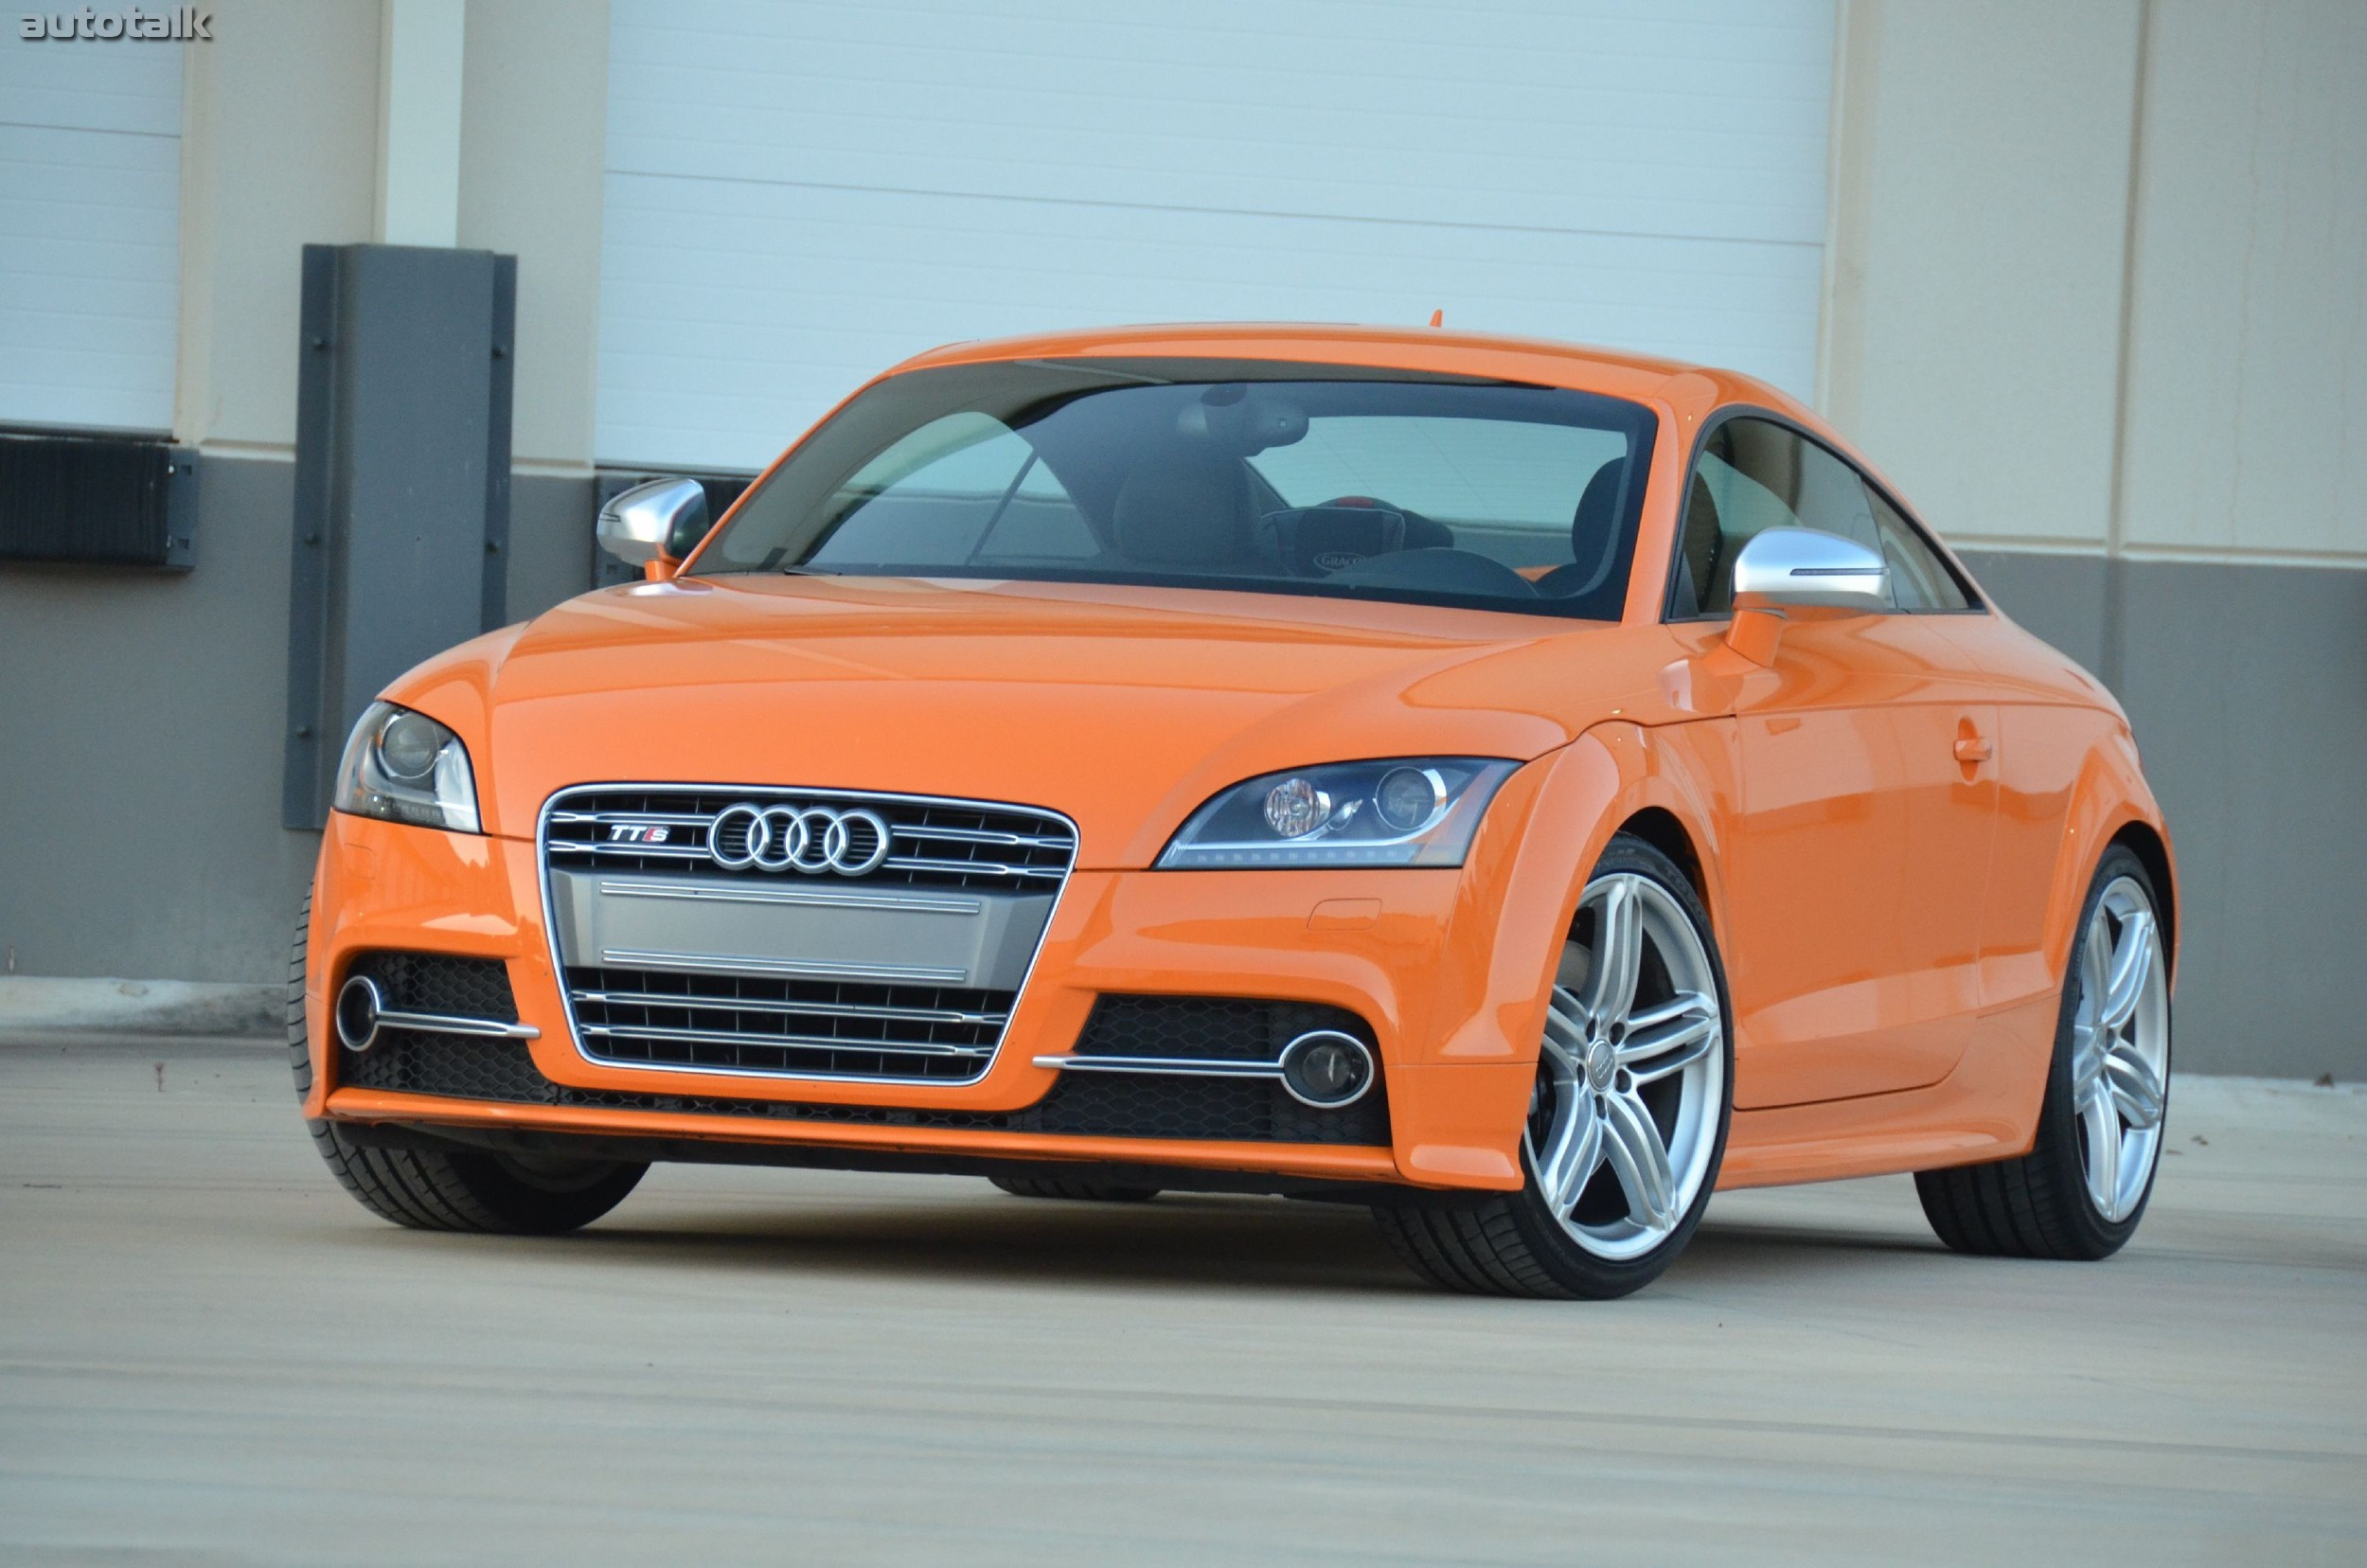 2012 audi tt s coupe review autotalk. Black Bedroom Furniture Sets. Home Design Ideas